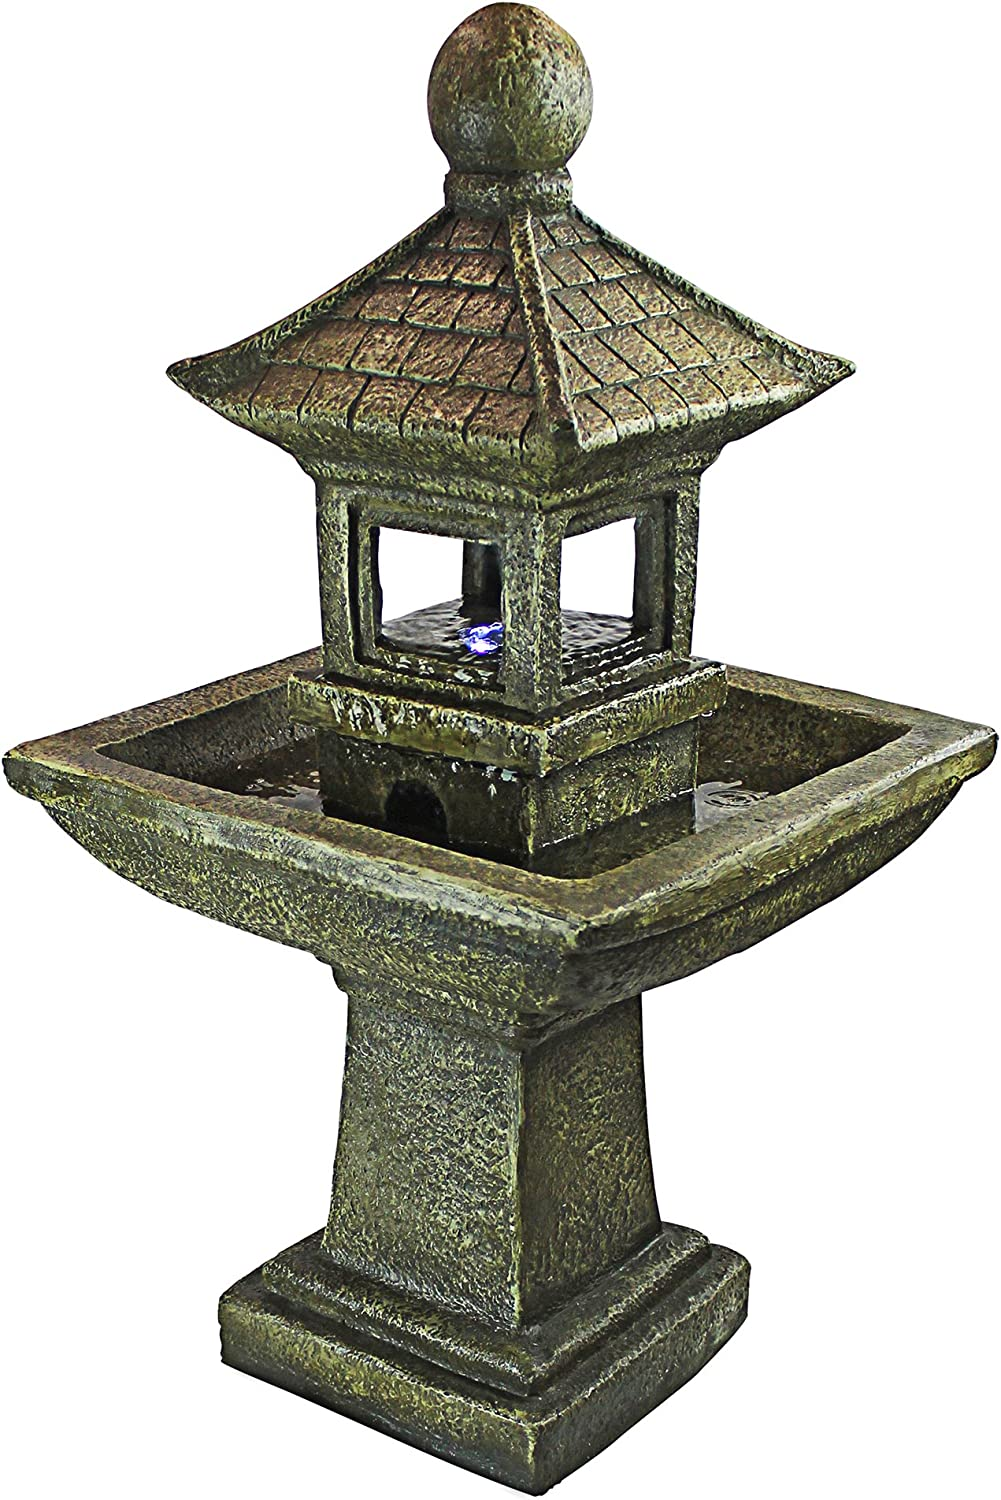 Design Toscano QN1509 Sacred Space Pagoda Illuminated Garden Fountain, 35 Inch, Faux Stone